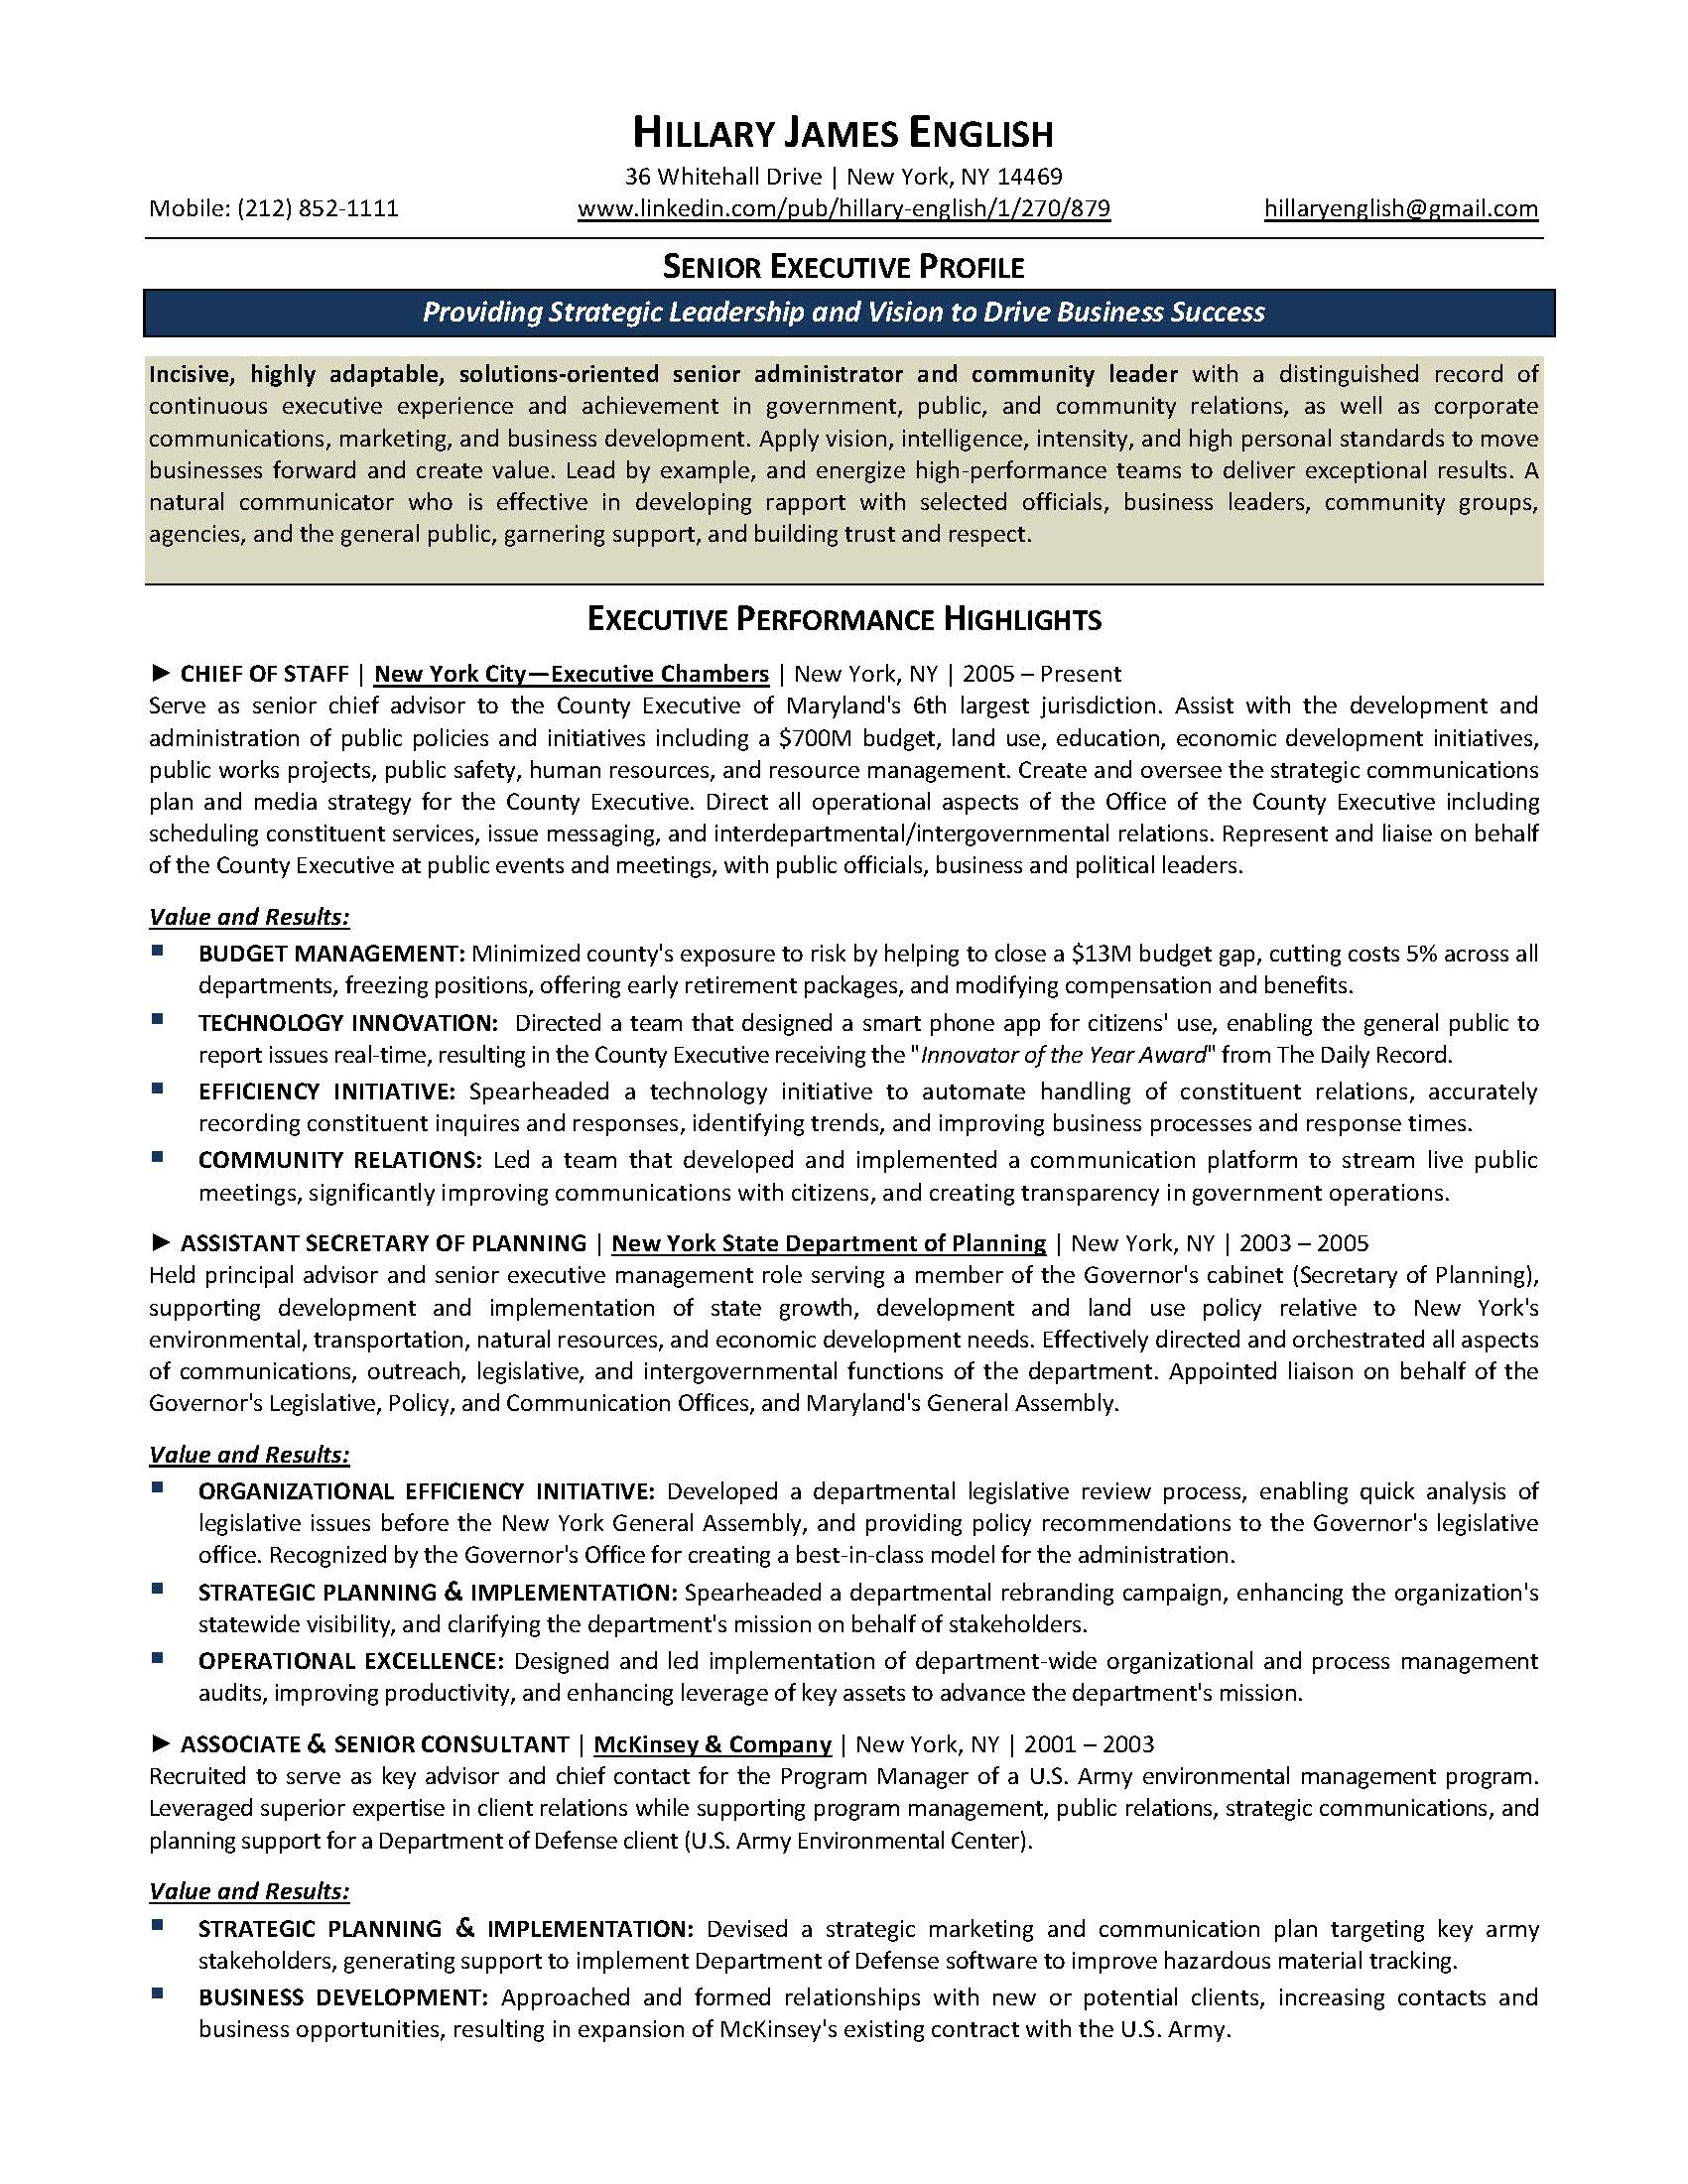 Lovely Senior Executive Resume Sample, Provided By Elite Resume Writing Services  Senior Executive Resume Examples